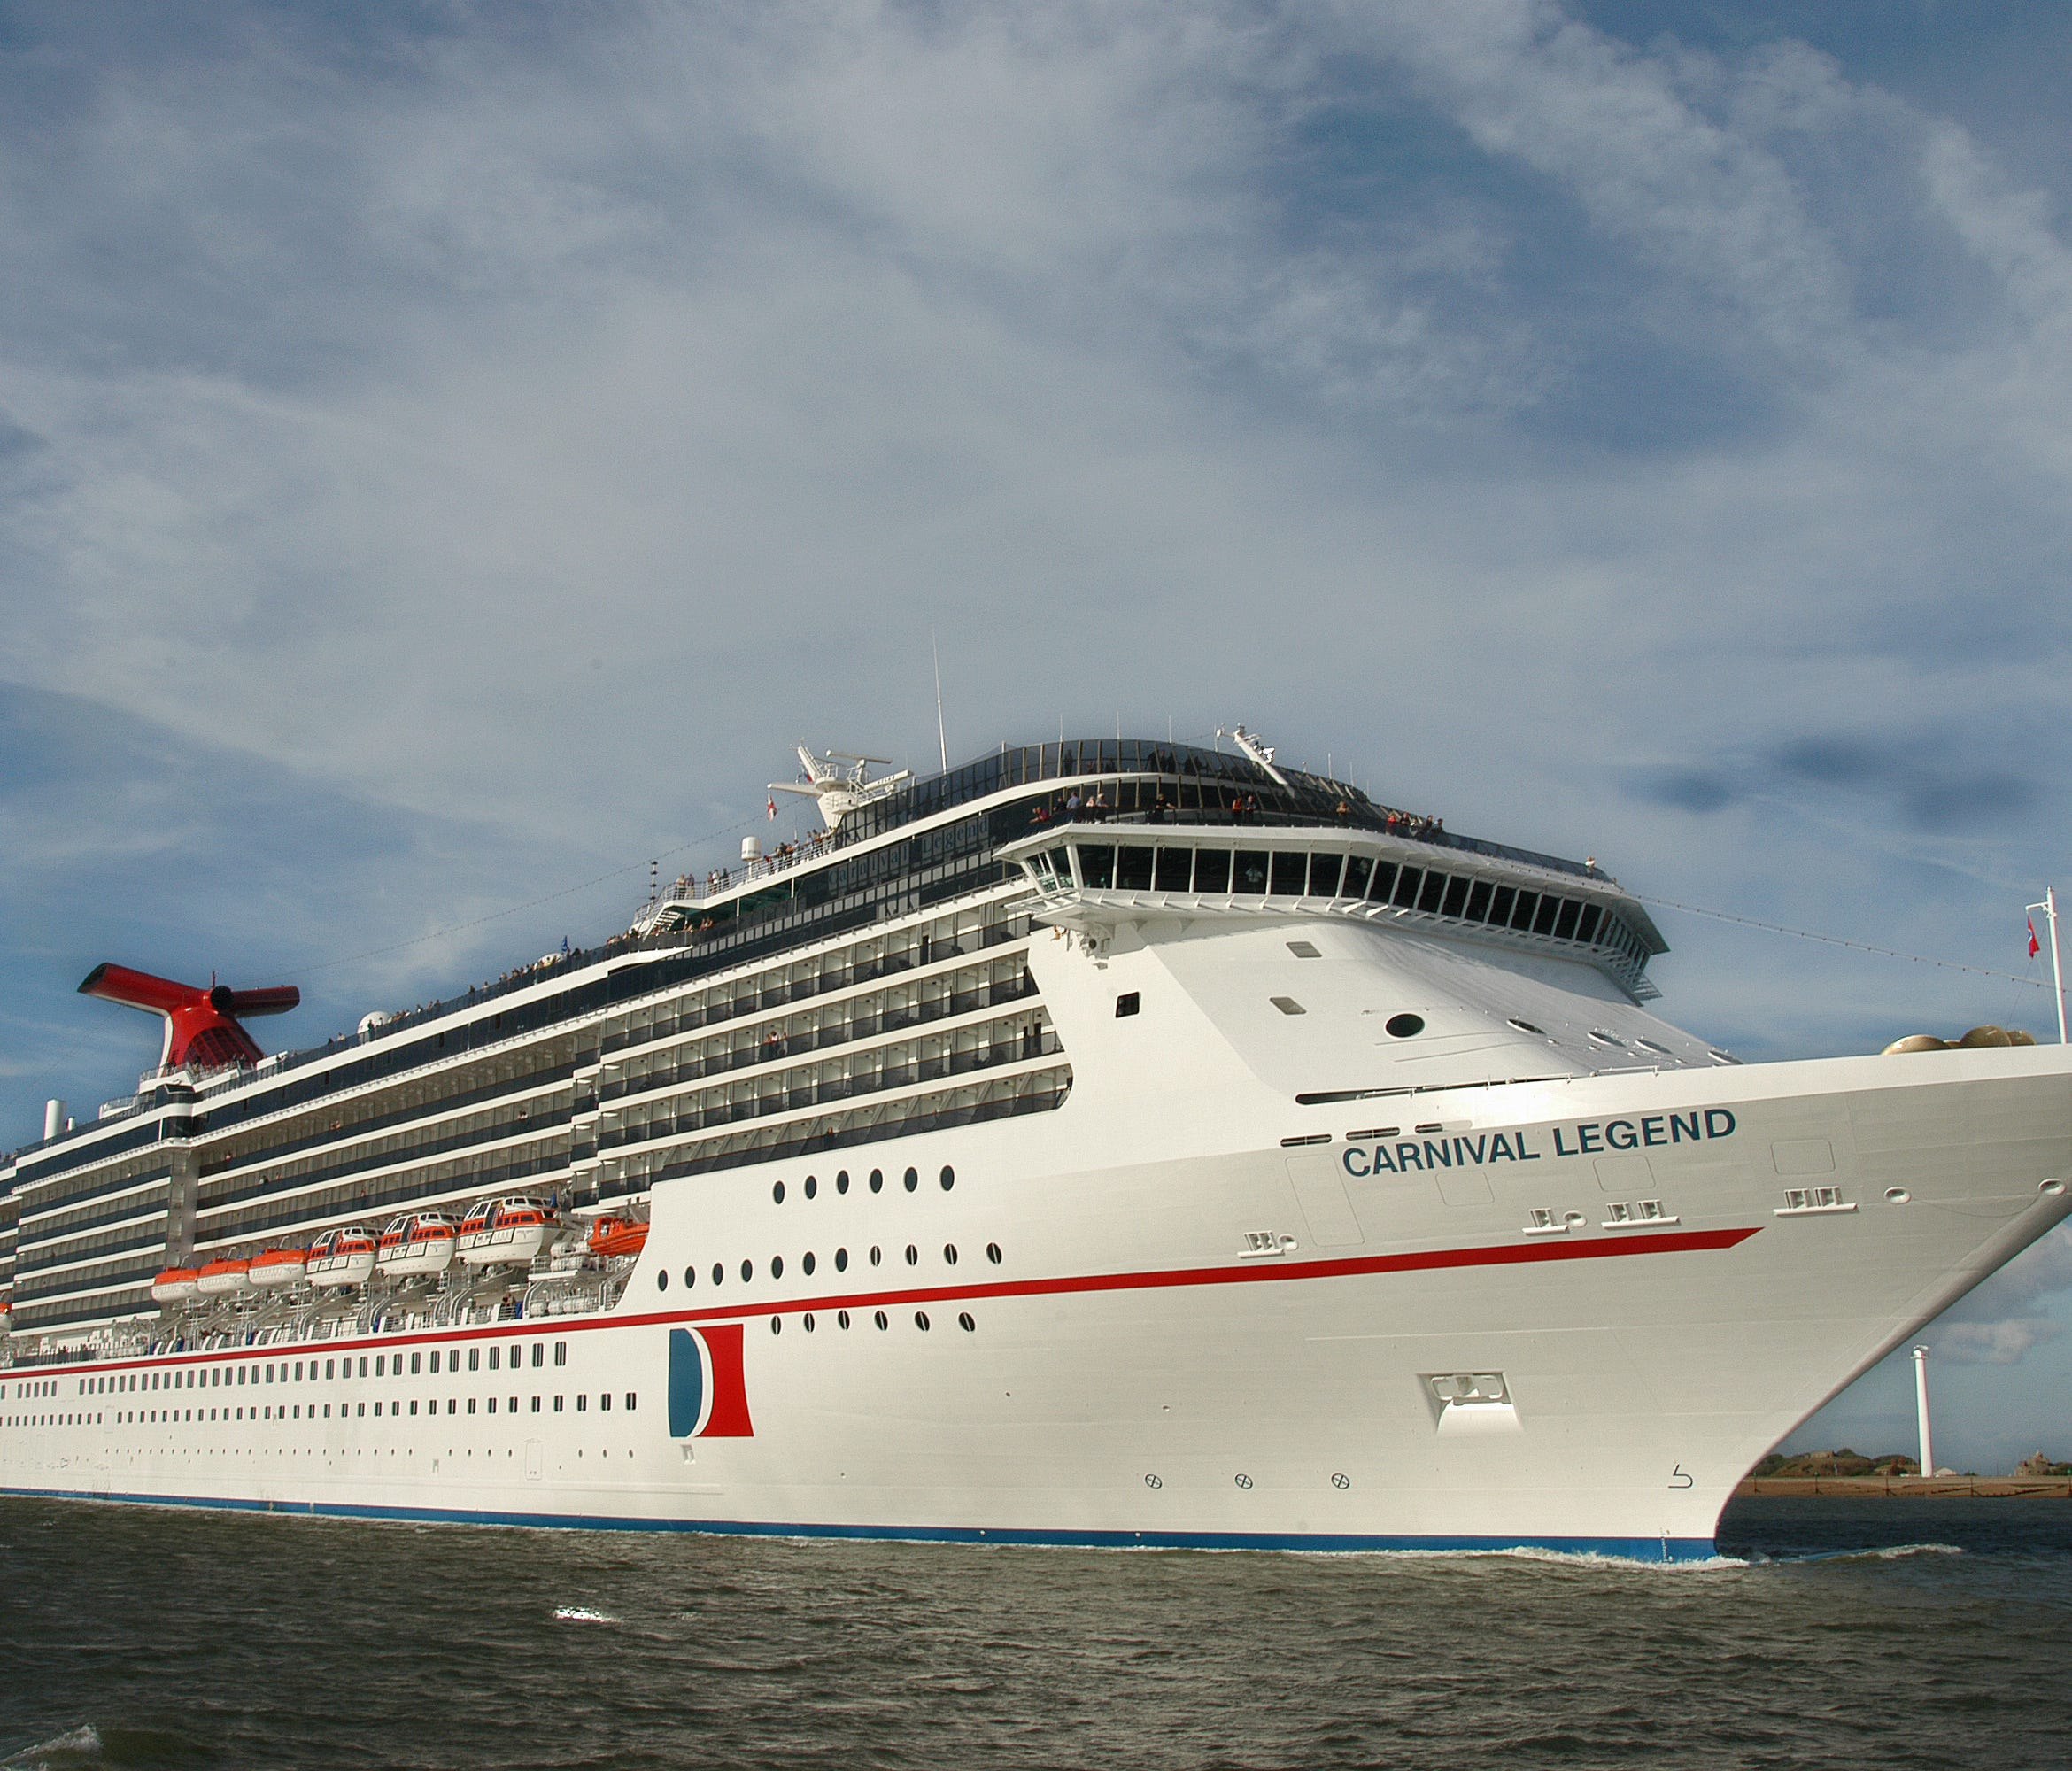 Sailing since 2002, the 2,124-passenger, 88,500-ton Carnival Legend is the second oldest of Carnival's four Spirit Class ships. It specializes in voyages to Alaska and Hawaii from several ports.